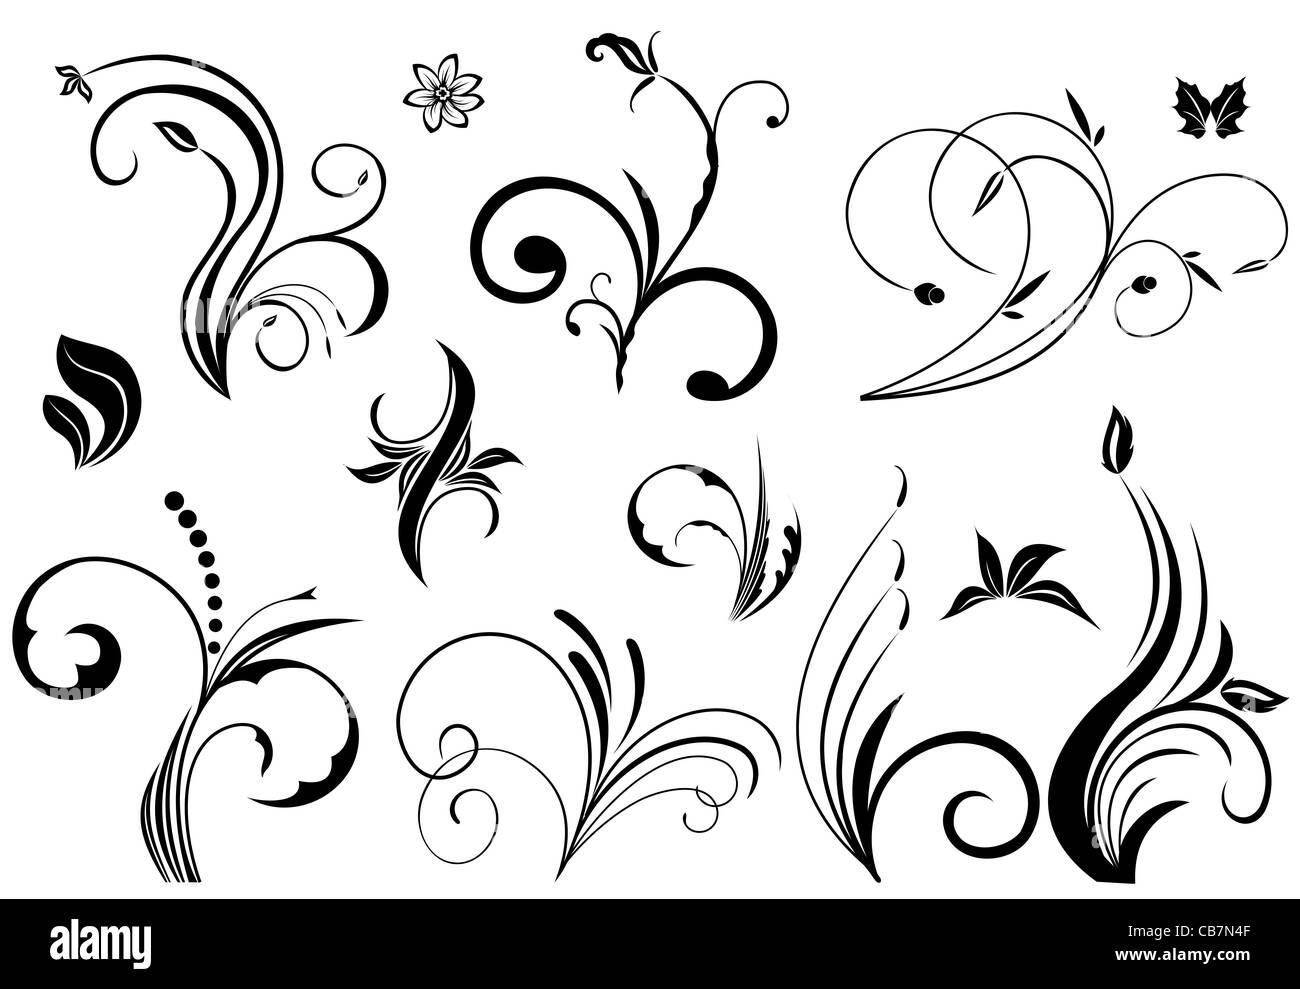 Illustration Set Floral Ornate Design Elements Vector Stock Photo Alamy